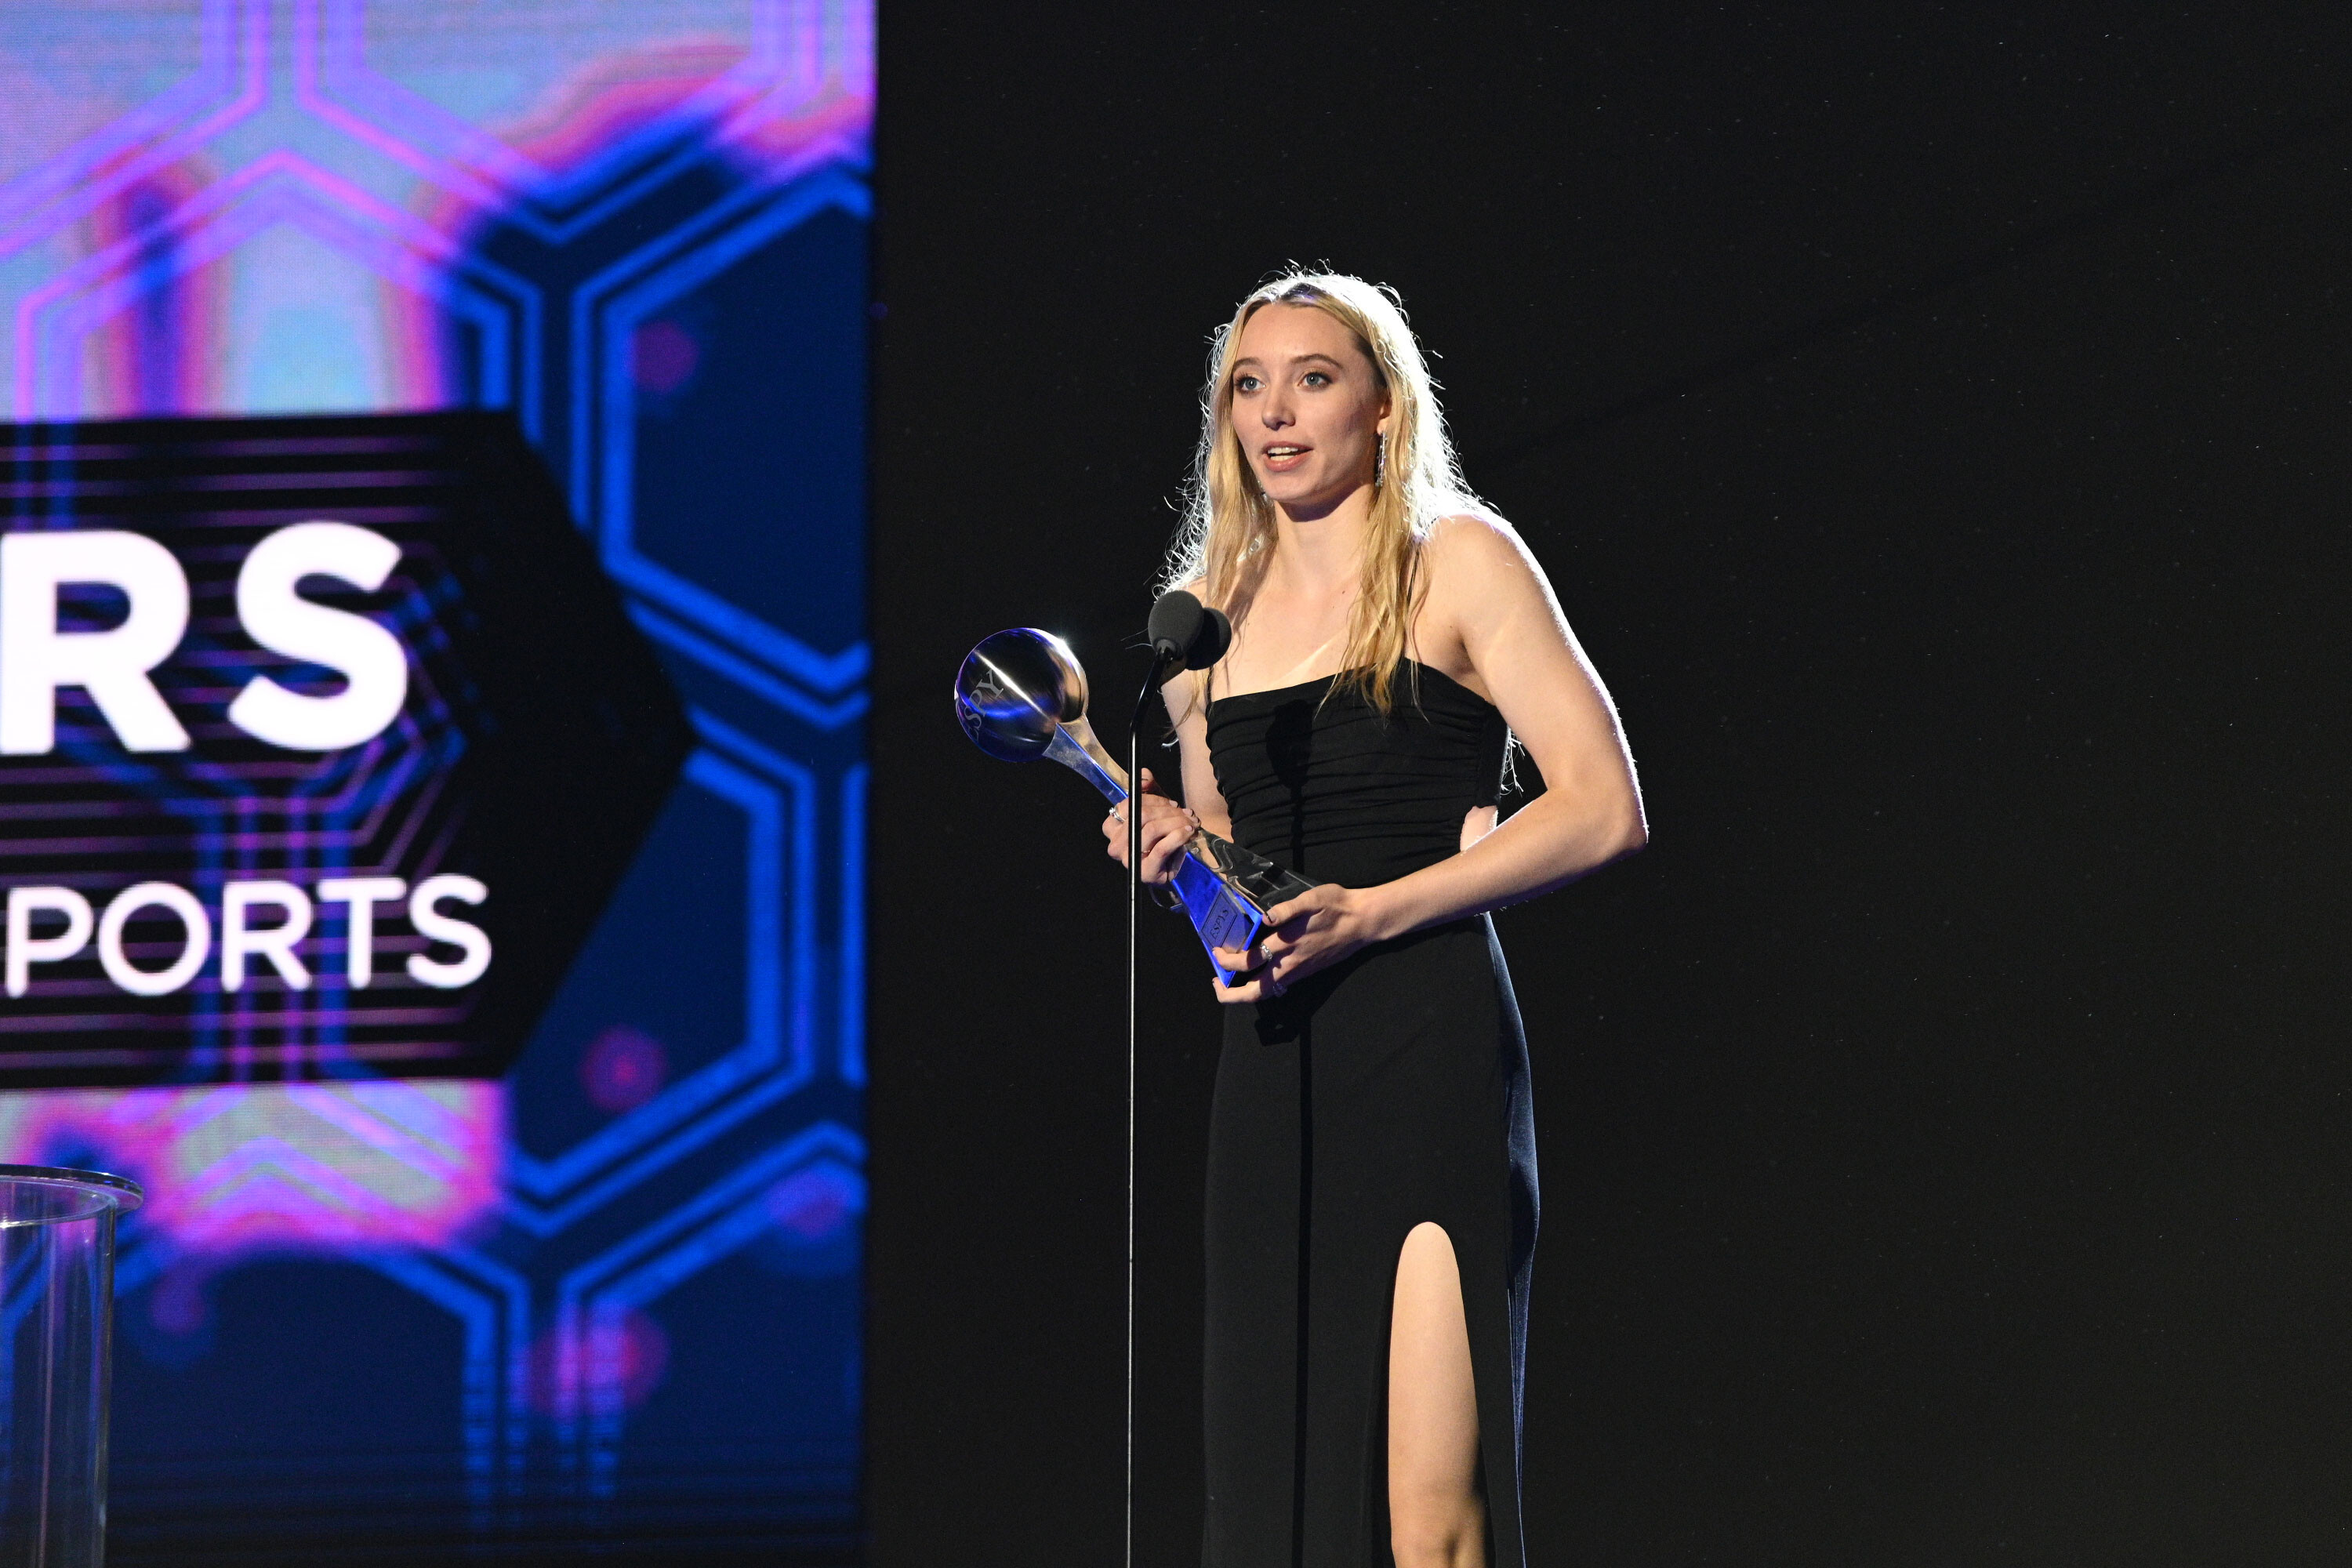 Star UConn guard Paige Bueckers uses ESPYS speech to honor Black women